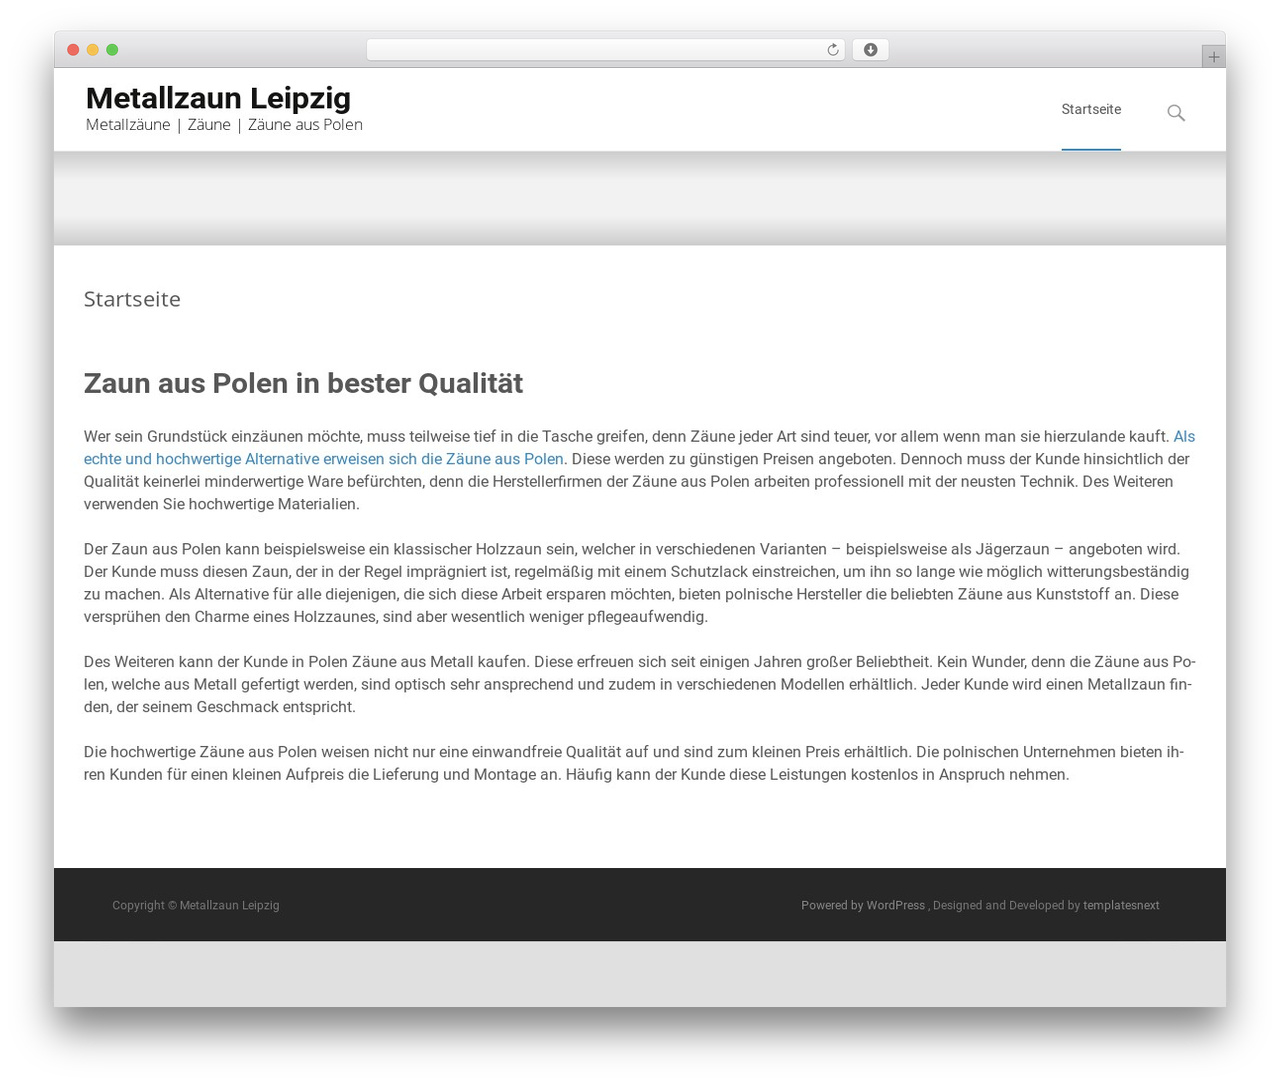 Metallzaun Aus Polen I Transform Best Wordpress Template By Templatesnext Team